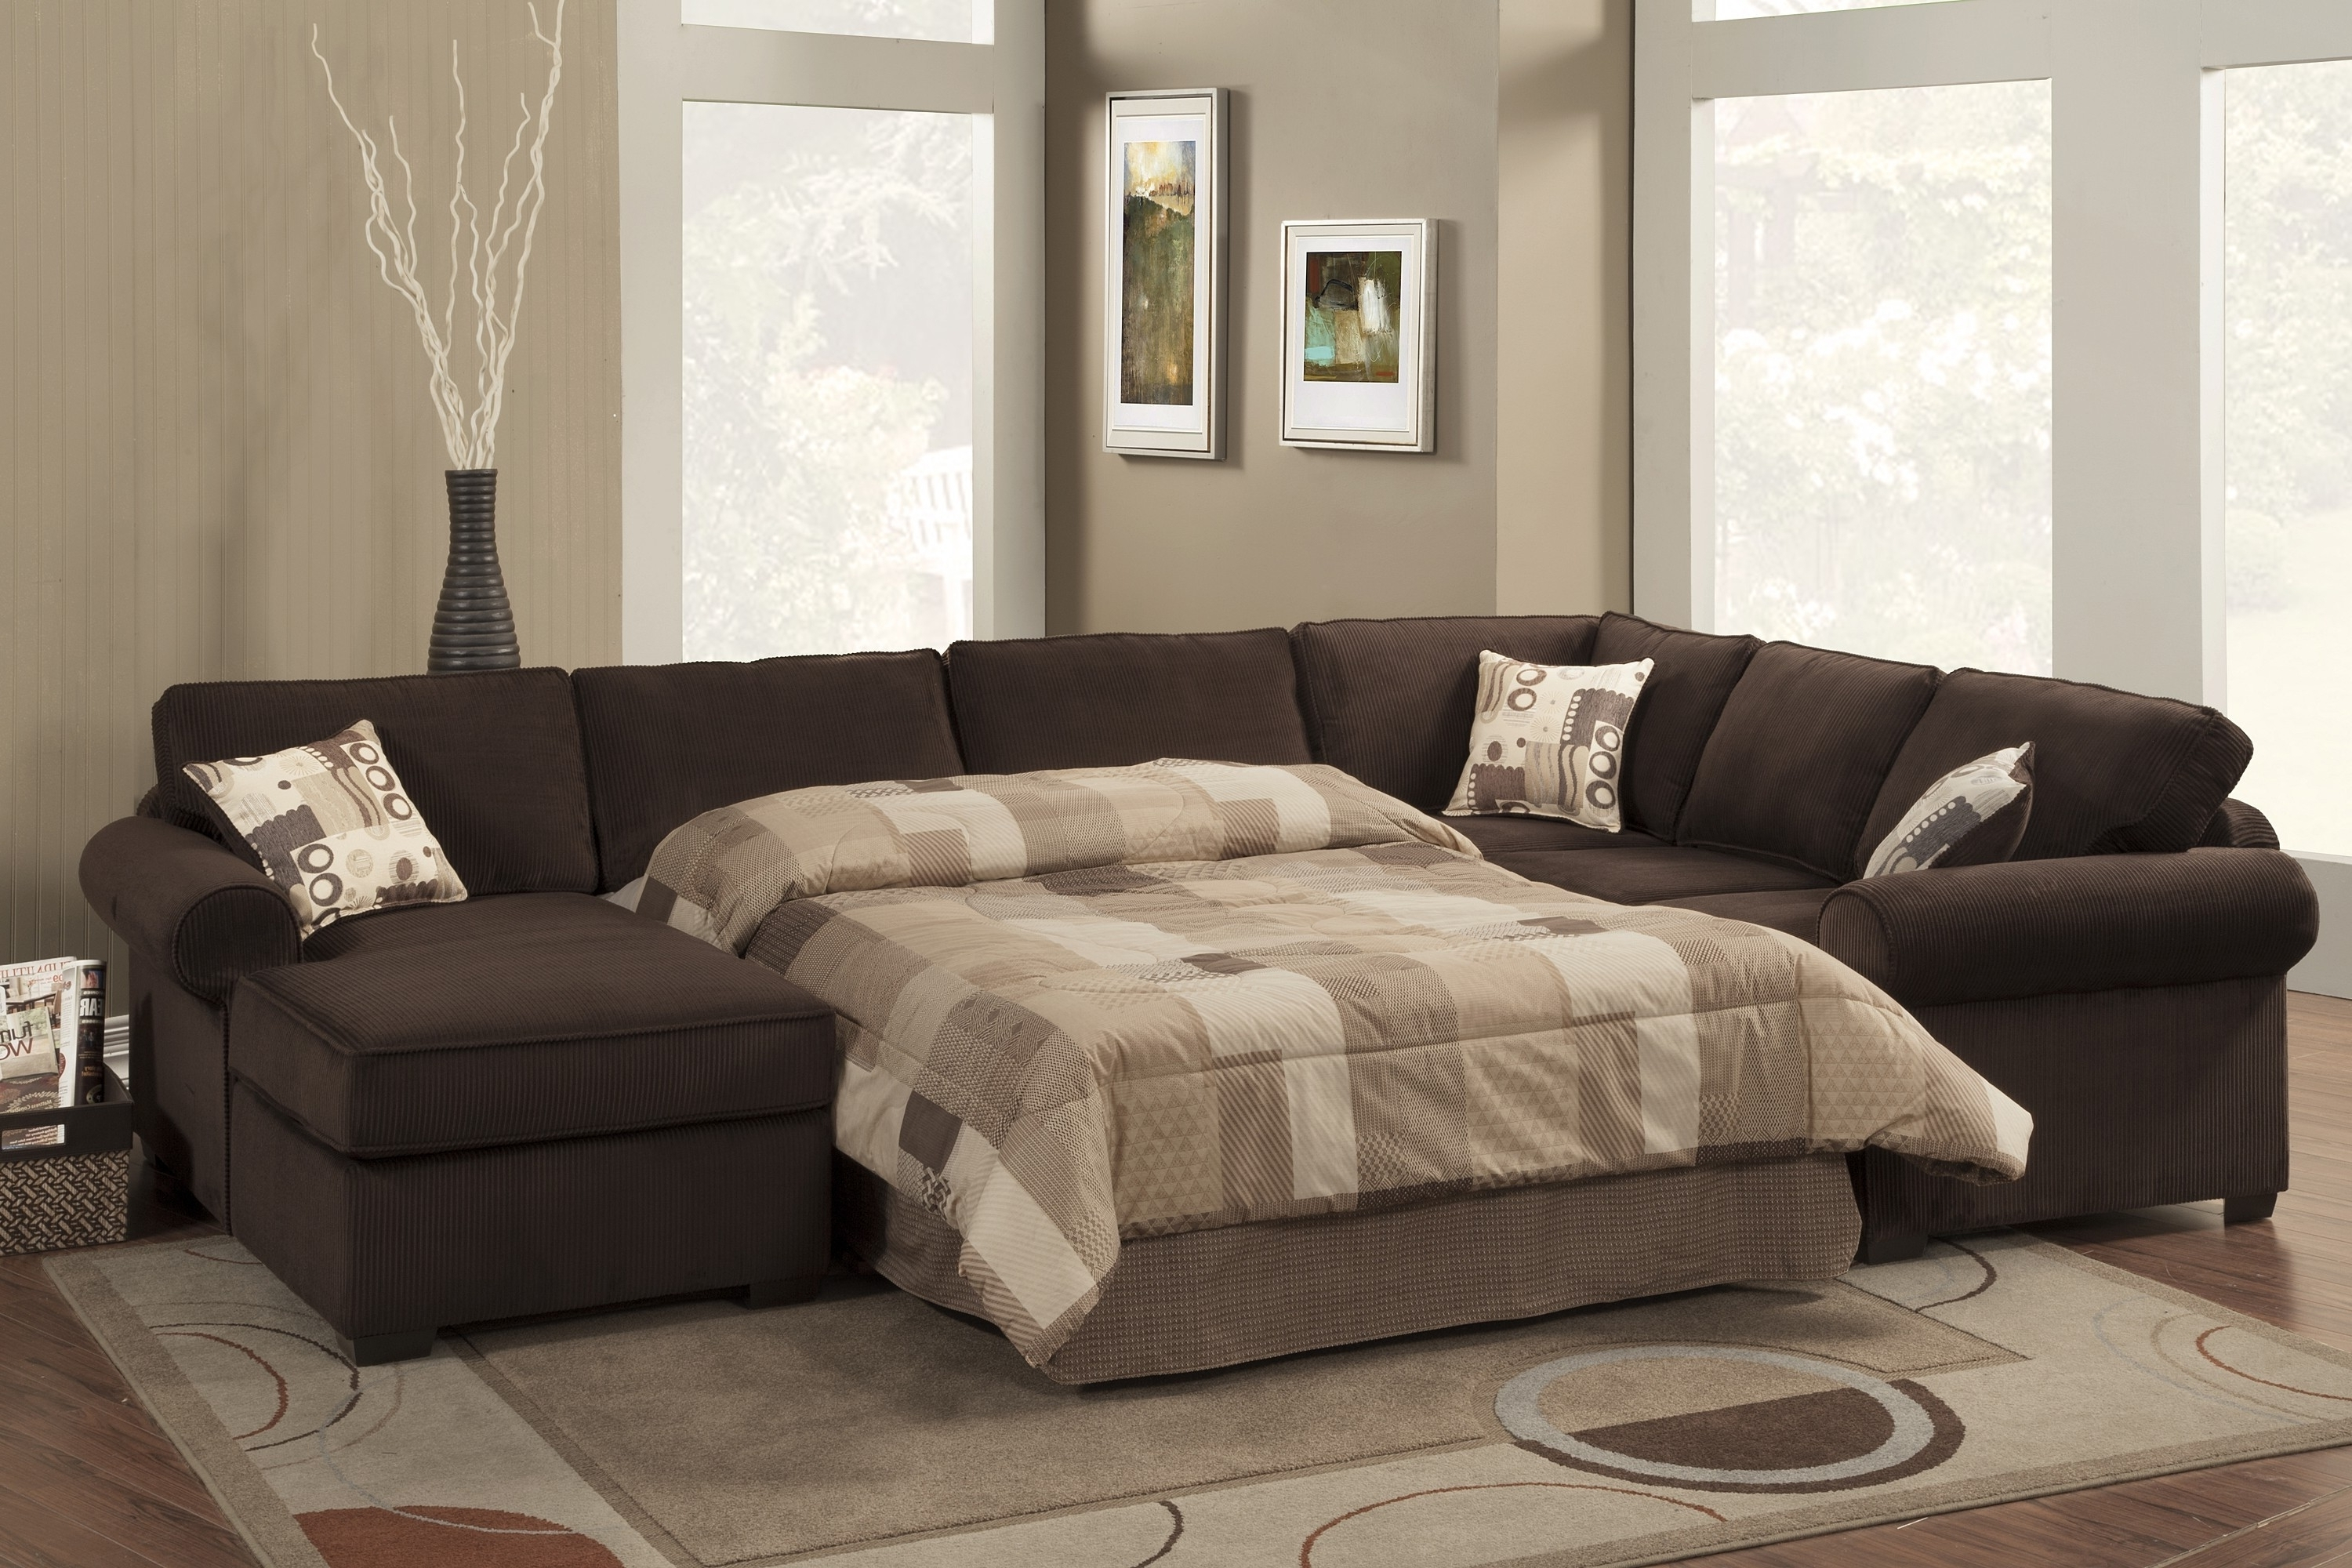 Pinterest Intended For Latest Sectional Sofas With Sleeper (View 4 of 15)